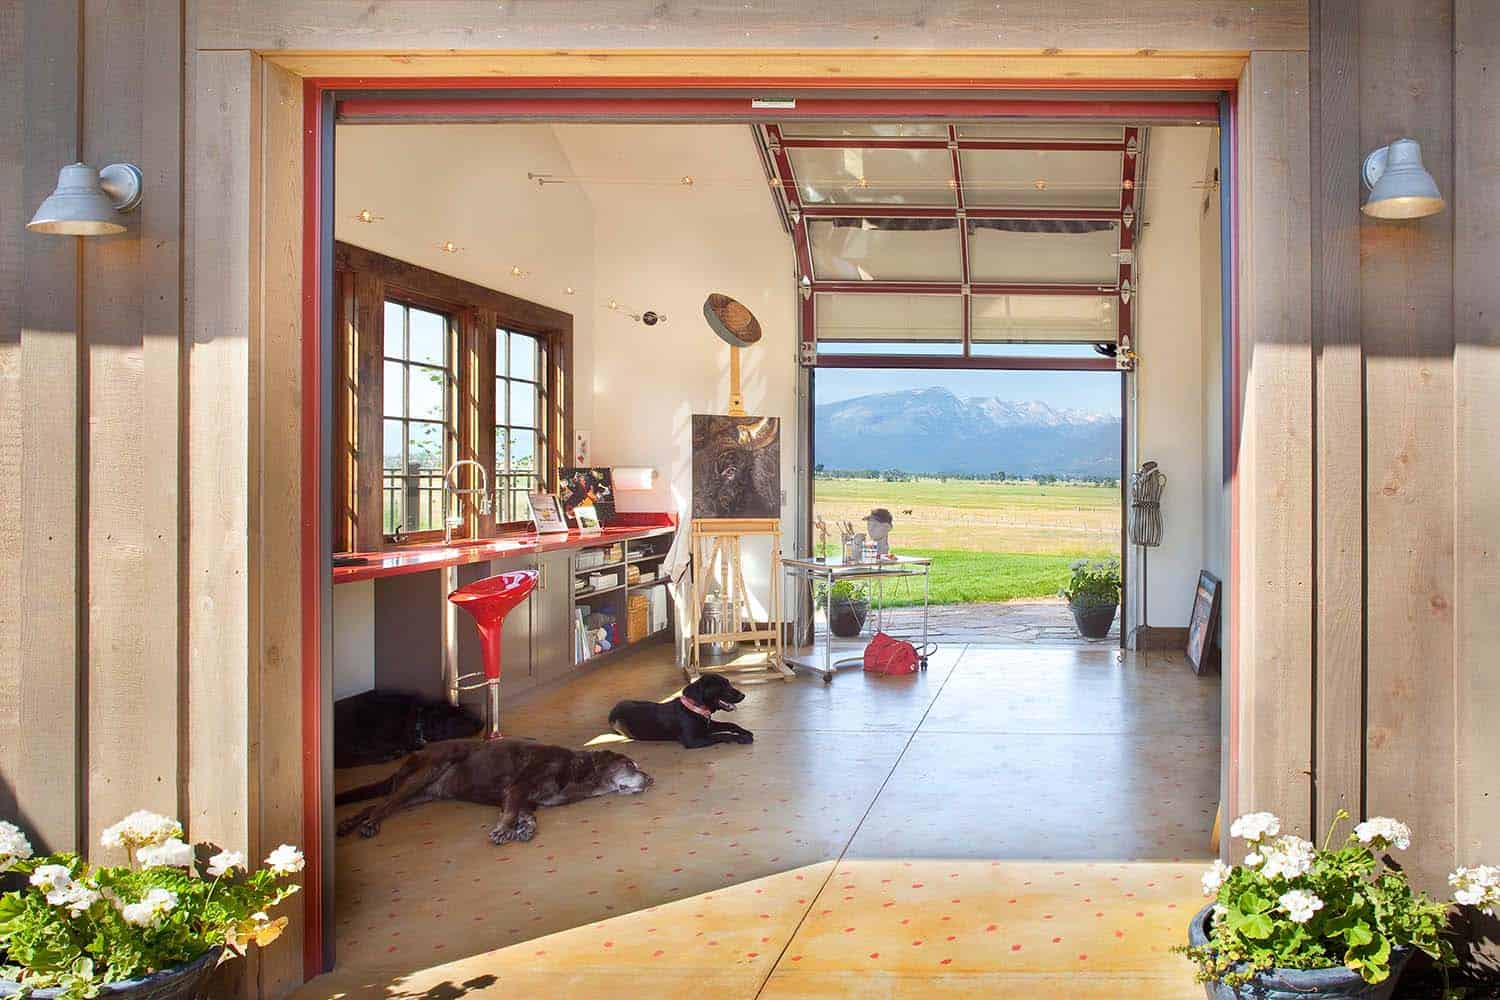 Rustic Rural Farmhouse-Locati Architects-25-1 Kindesign